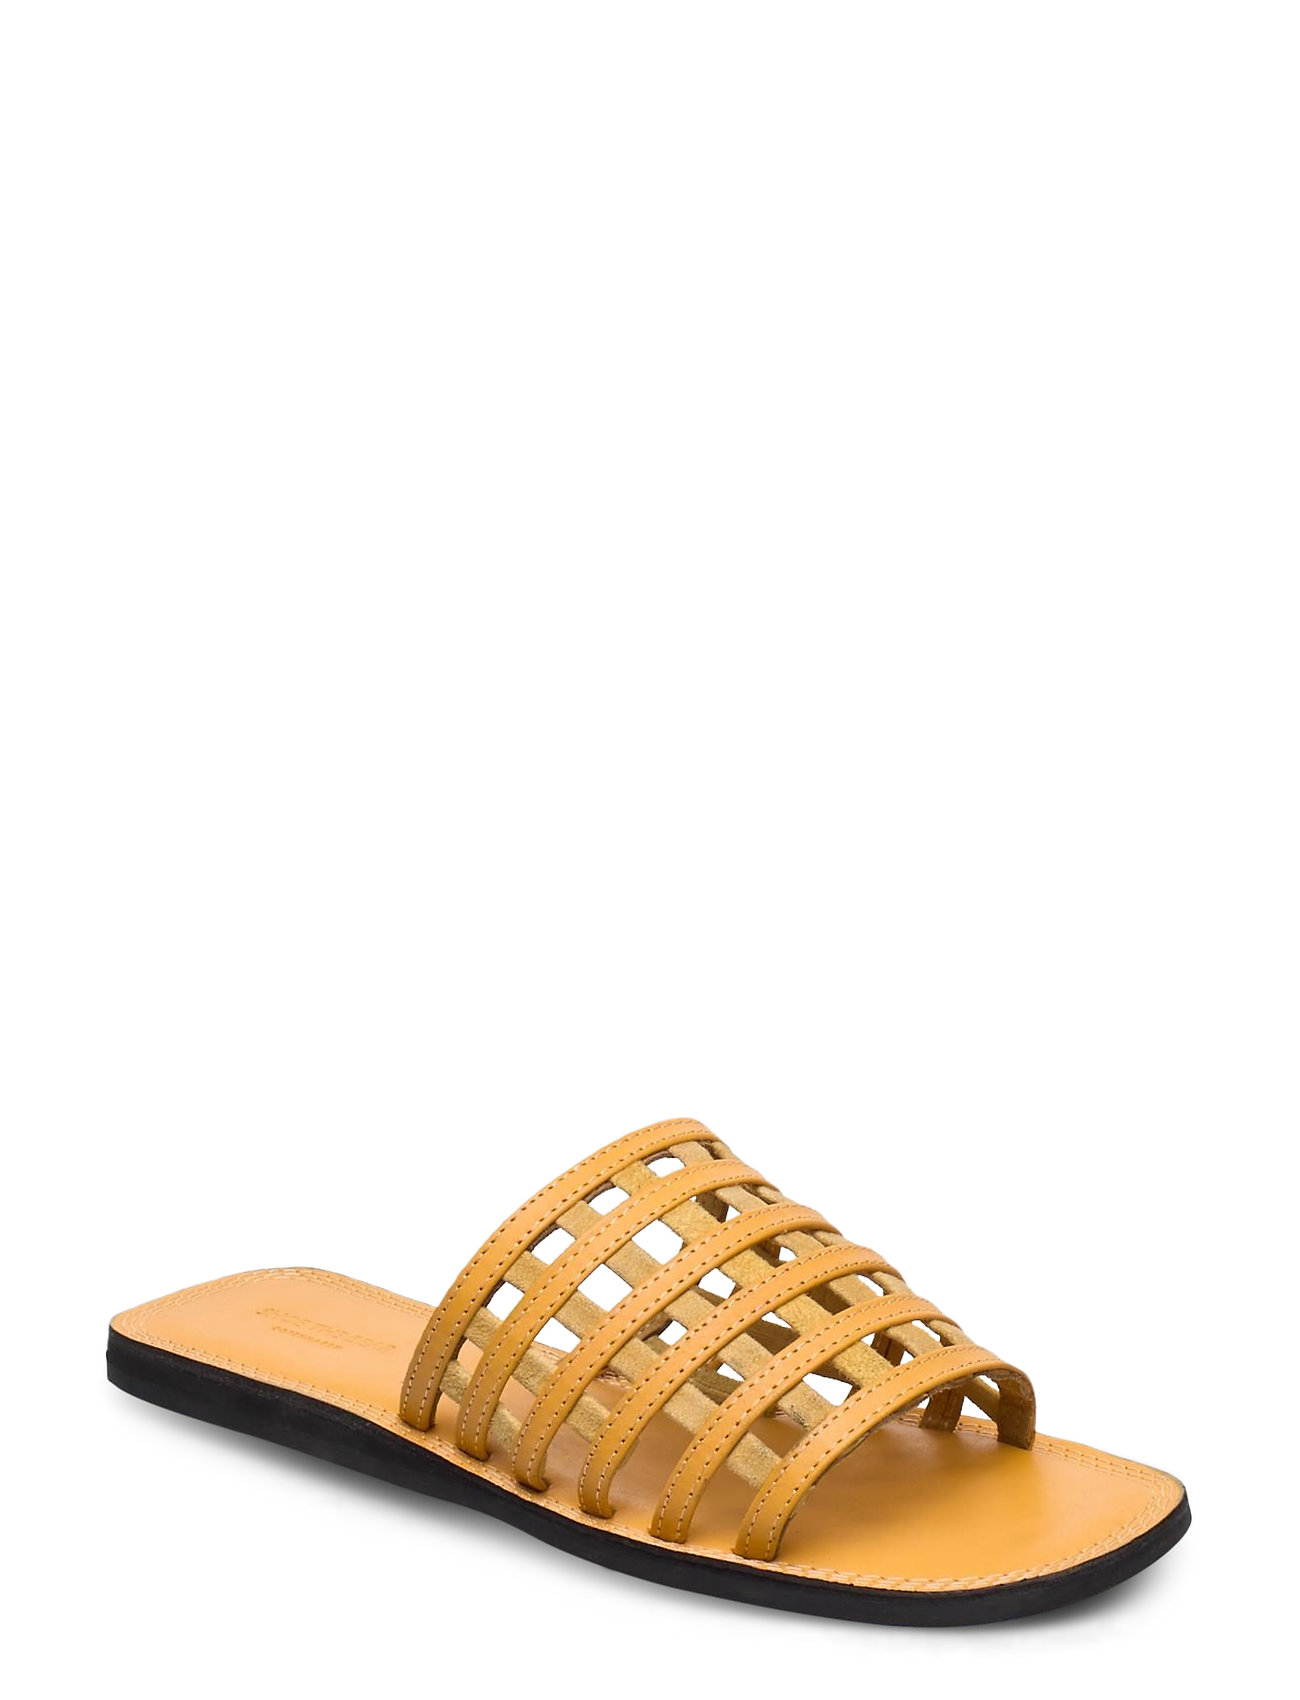 Image of Stb-Tao Cage Shoes Summer Shoes Flat Sandals Gul Shoe The Bear (3406228203)